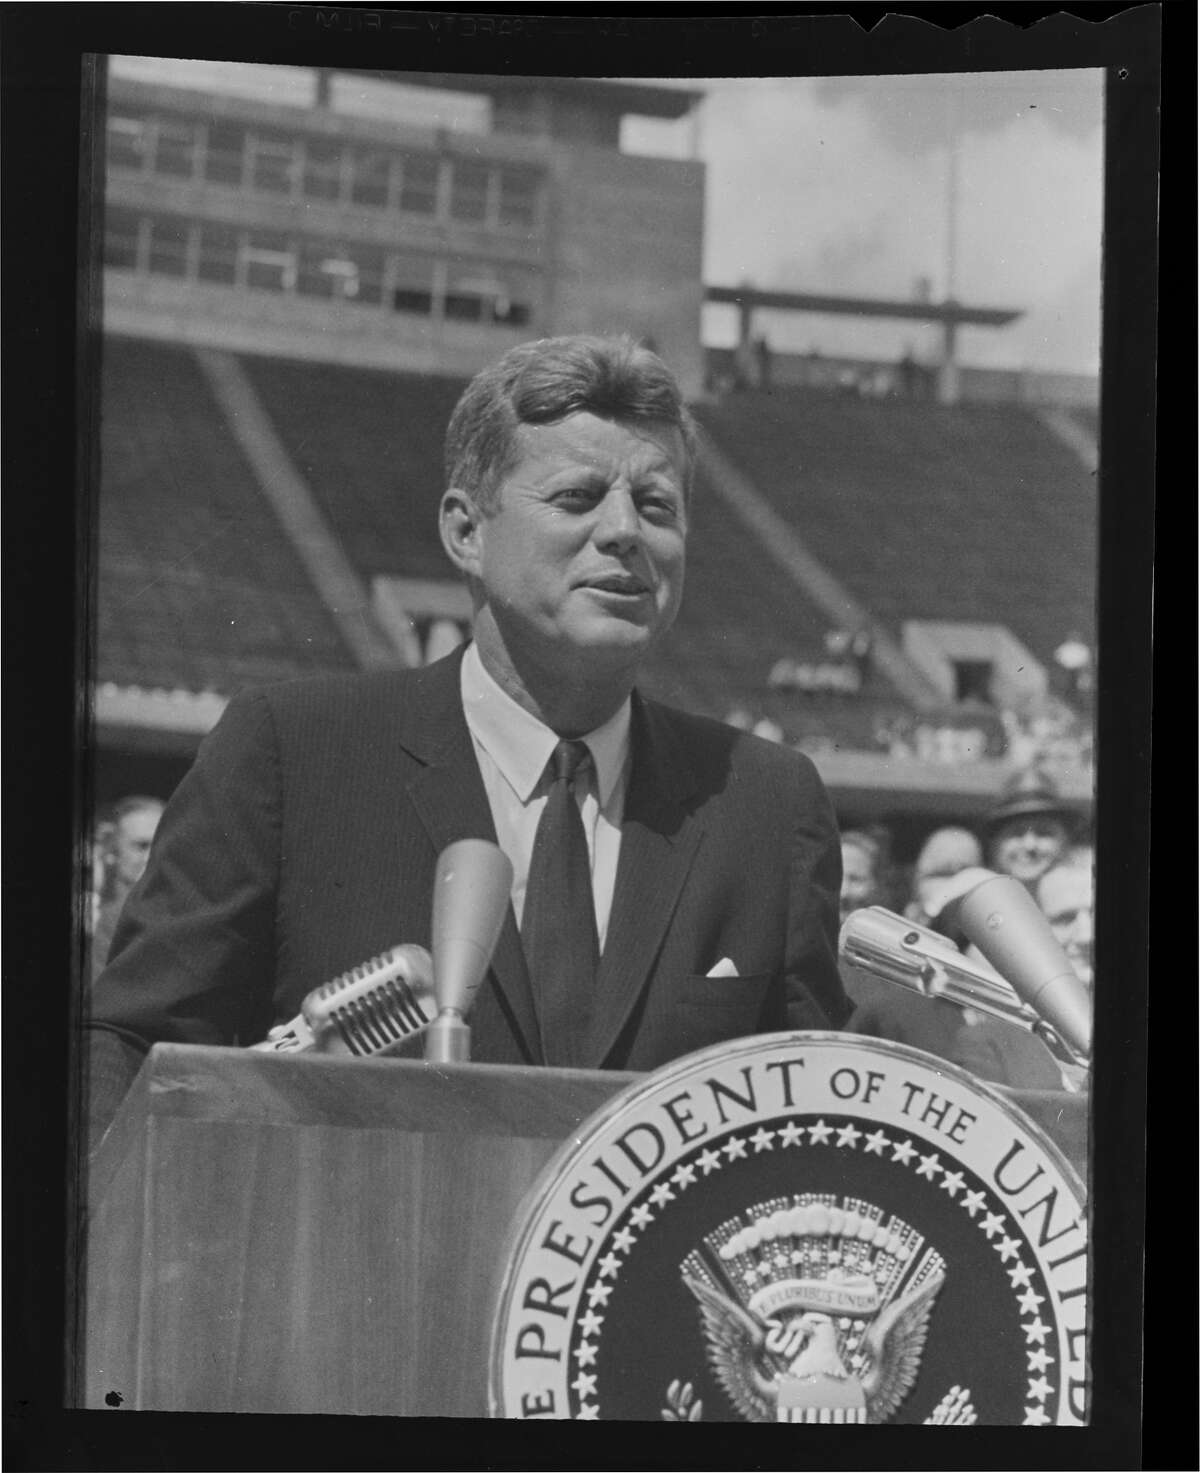 President John F. Kennedy told Houston and the world on Sept. 12, 1962, that America would land American astronauts on the moon within the decade.